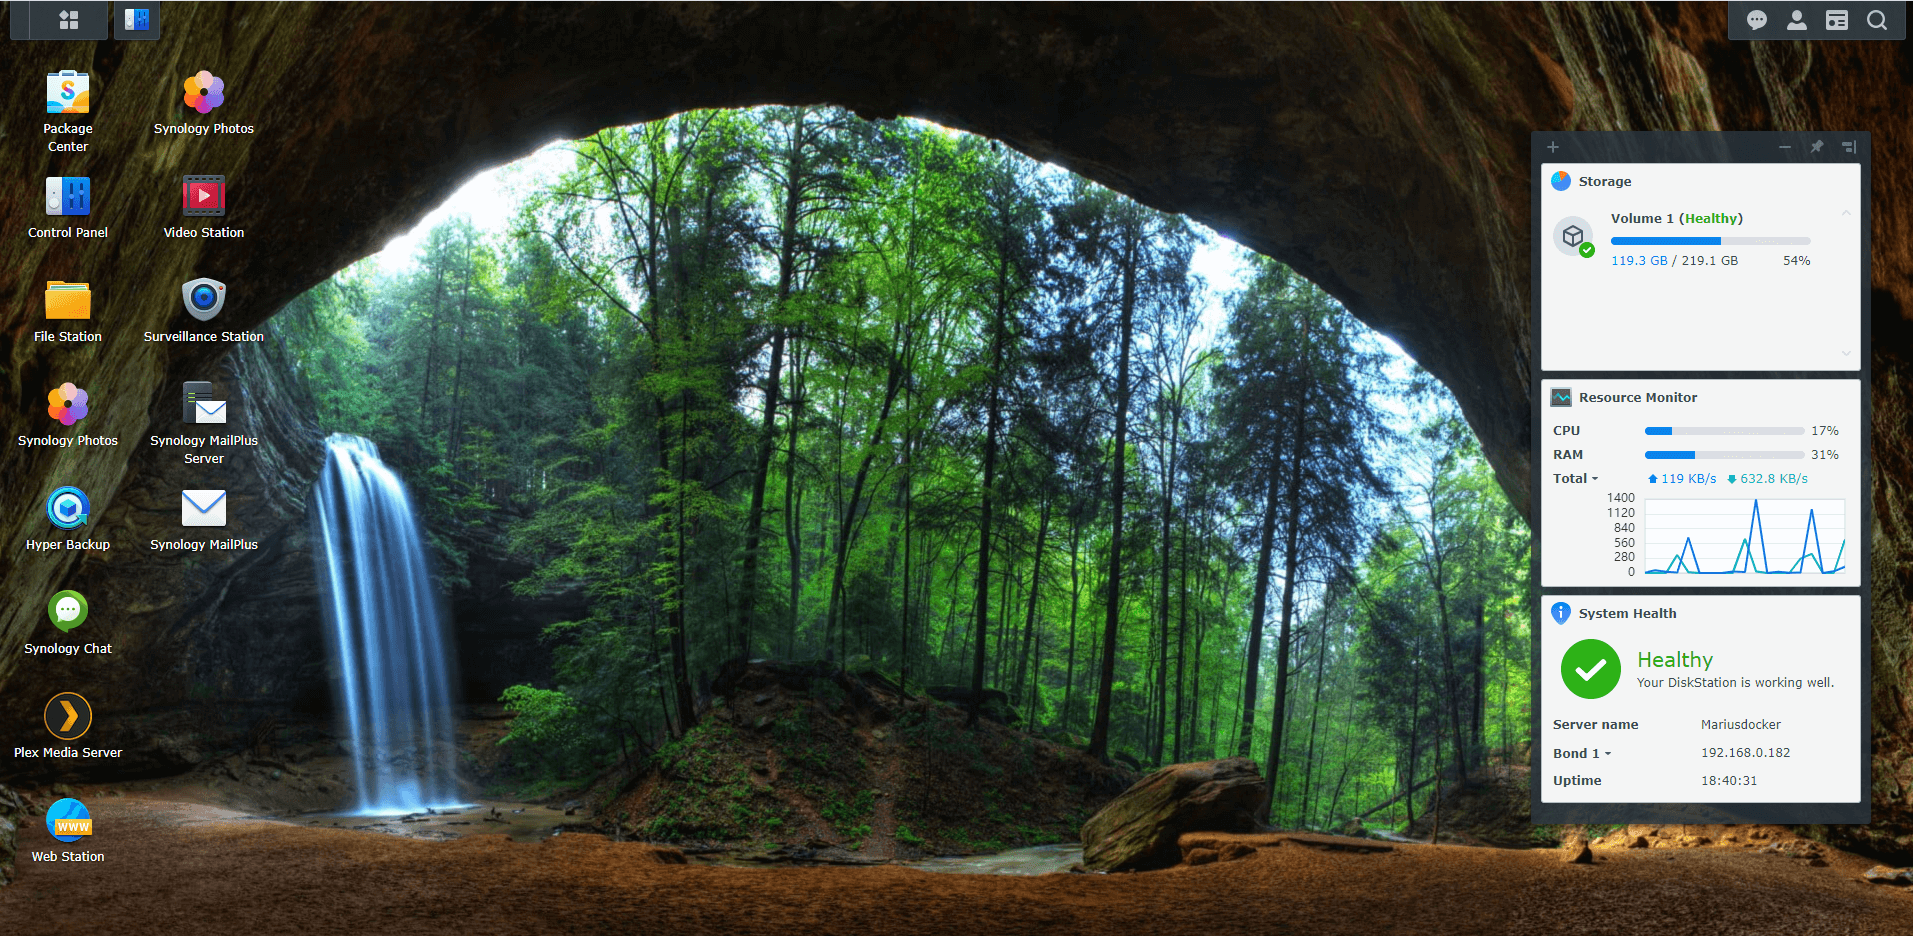 Synology Cave Wallpapers For DSM 7 5